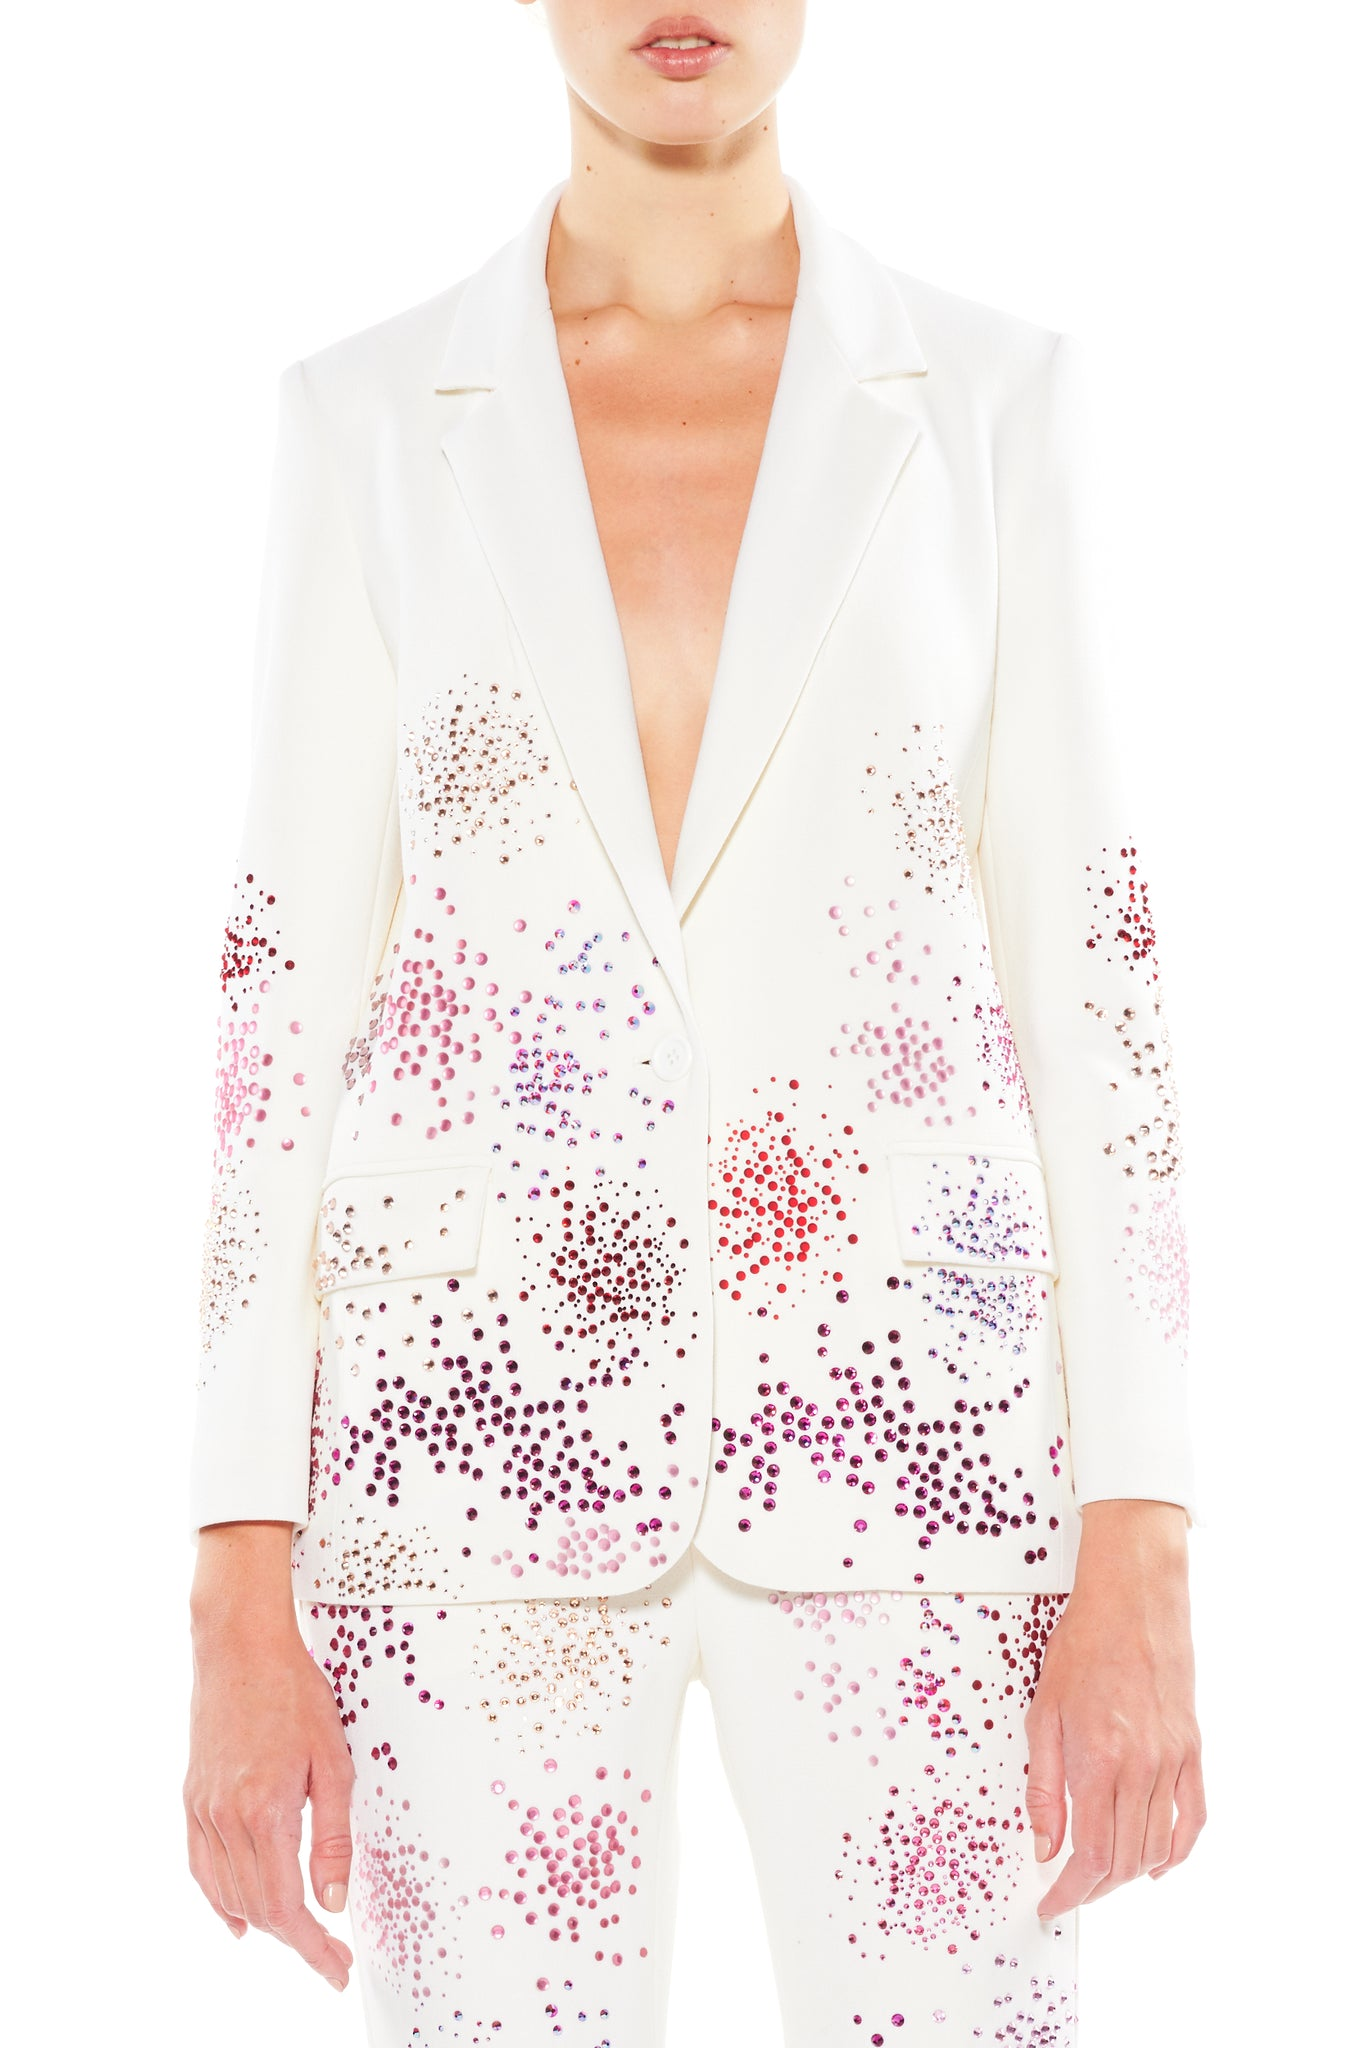 """MO' MONET MO' PROBLEMS"" LONG BLAZER - Women's Jackets & Coats - Libertine"